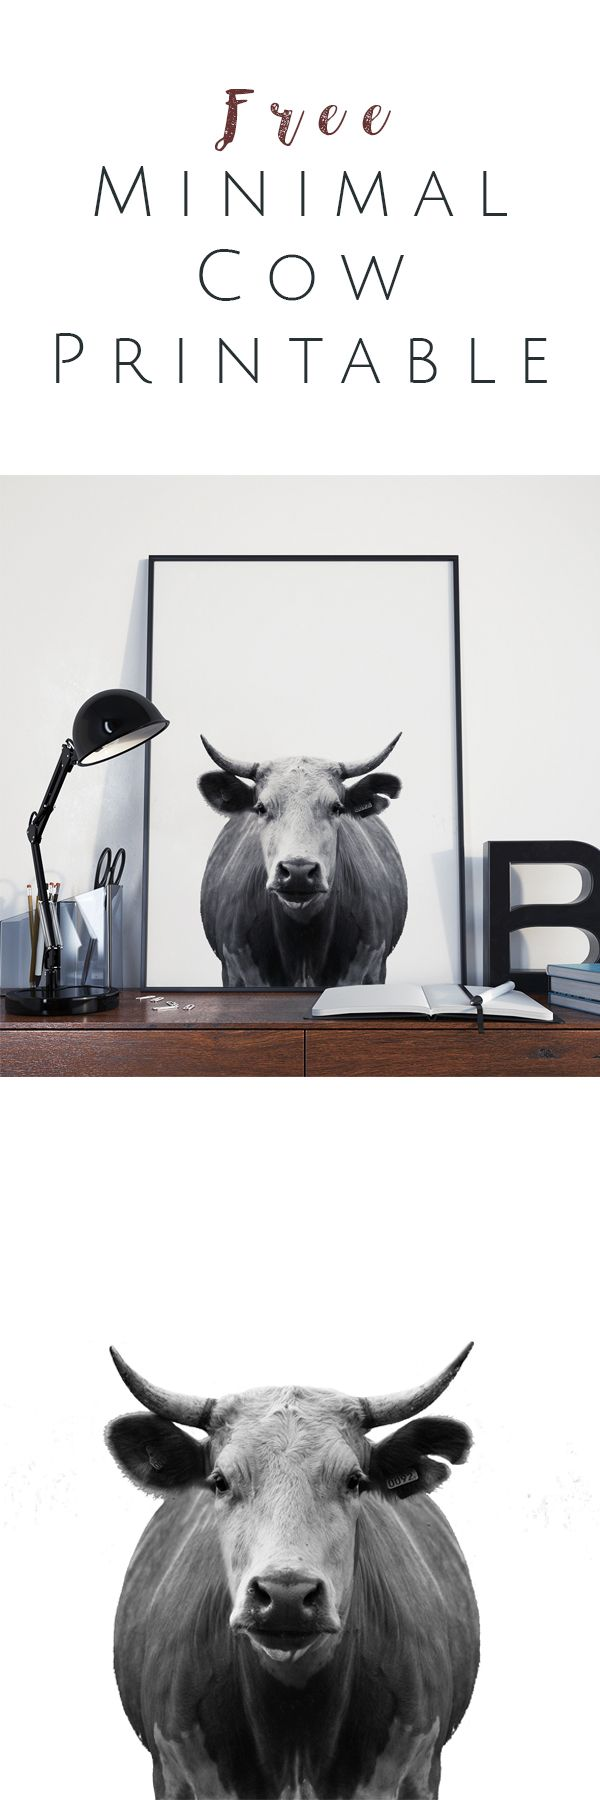 FREE Minimal Cow Printable. Southern charm with a modern twist.  Black and white cow perfect for wall art.  OkieHome freebies and blog.